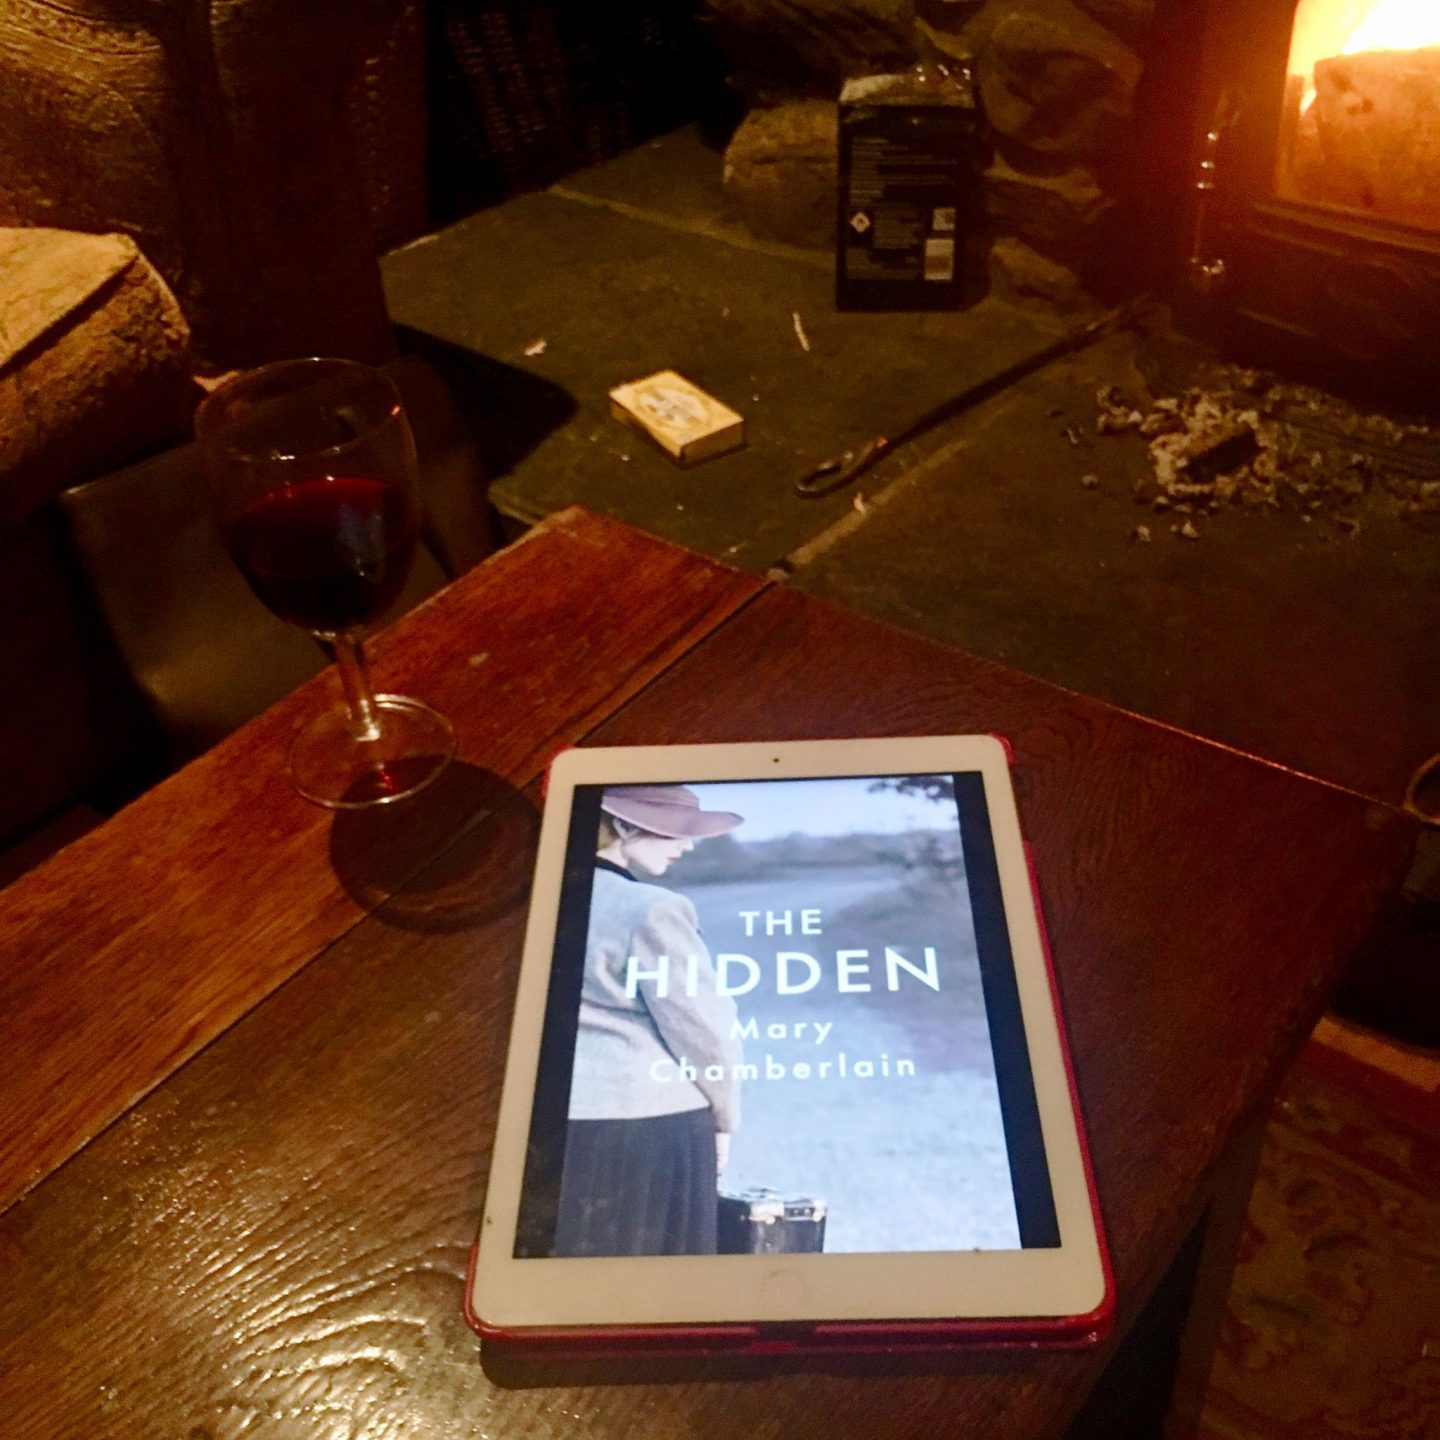 My ecopy of The Hidden in front of a wood burner with a glass of wine.